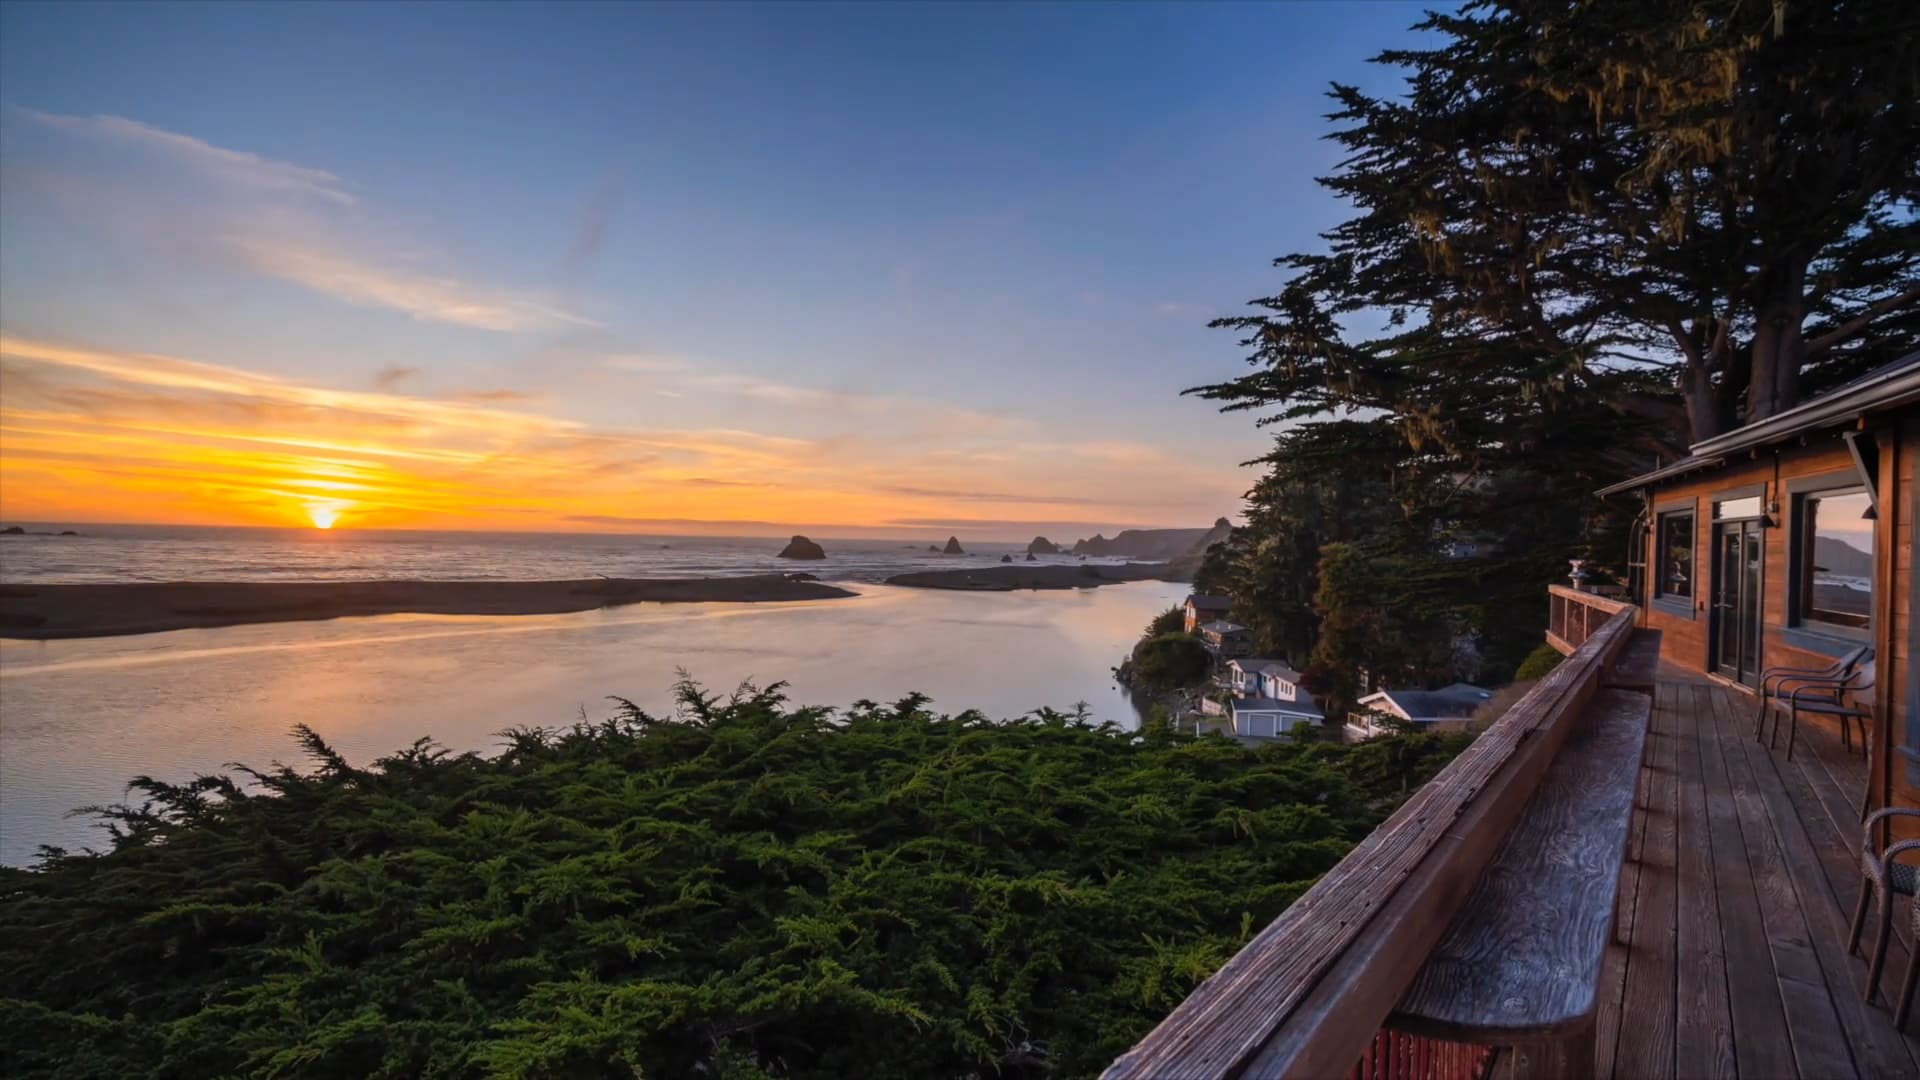 Views from the deck of one of our Jenner vacation rentals